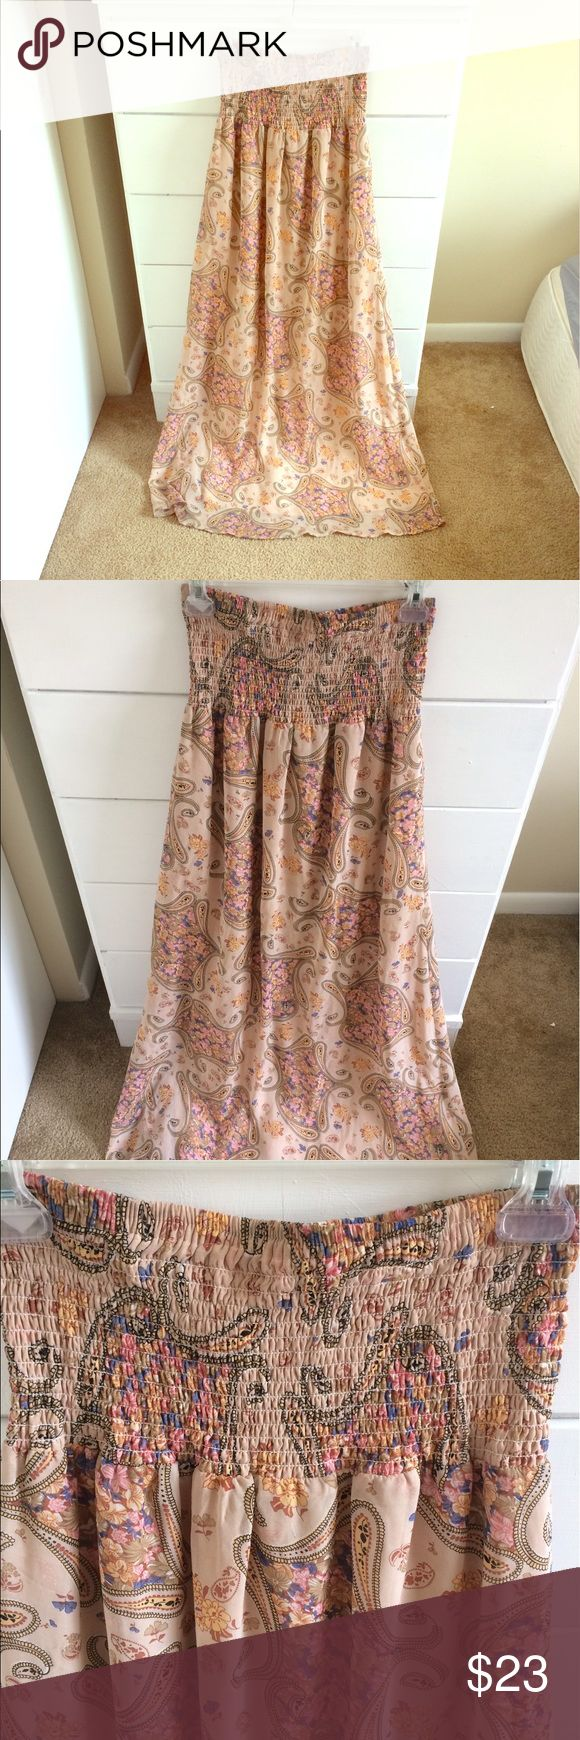 Tube top floral maxi dress Floral maxi dress from Rue 21. In great condition. Very feminine and perfect for summer! Rue 21 Dresses Maxi